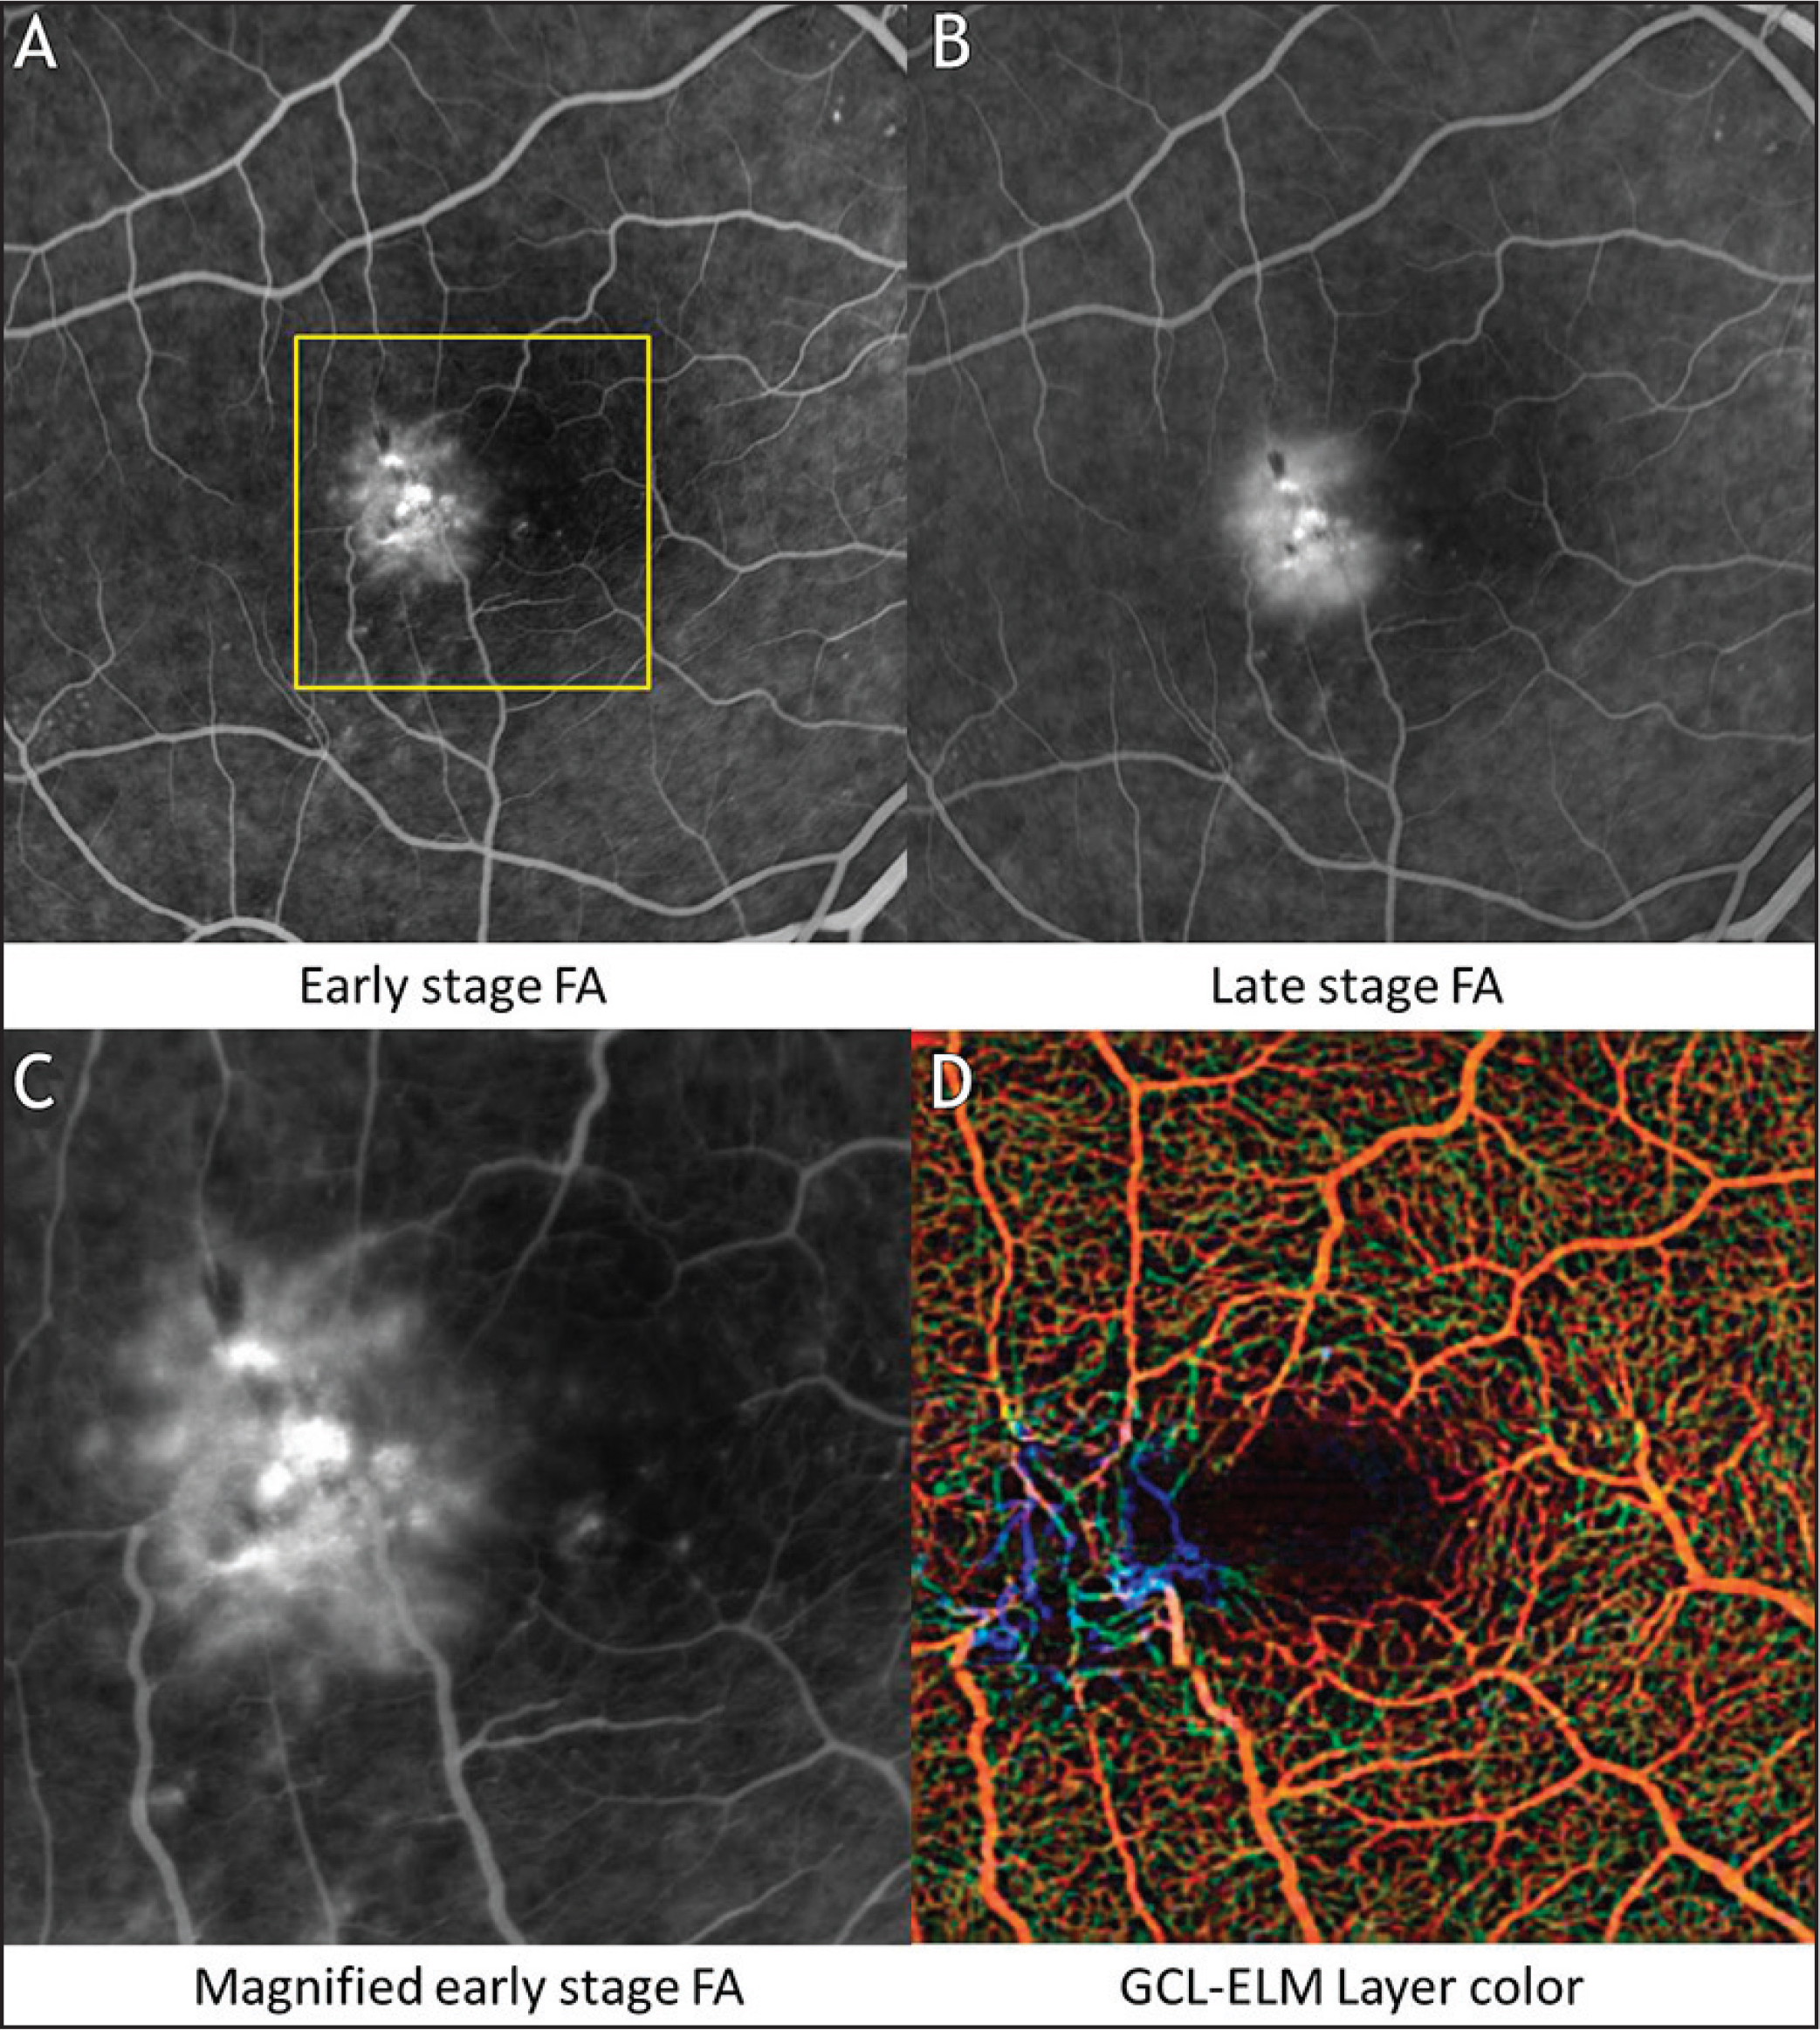 Optical coherence tomography angiography (OCTA) using a modified spectral-domain Cirrus OCT (Angioplex; Carl Zeiss Meditec, Dublin, CA) and fluorescein angiography (FA) images of the right eye of a 62-year-old woman with intermediate, nonproliferative macular telangiectasia type 2. (A) Early-phase FA image shows hyperfluorescence in the temporal juxtafoveal region. (B) Late-phase FA image with increased hyperfluorescence and leakage. (C) Magnified early stage FA image shows a detailed view of the hyperfluorescent area that represents the telangiectatic microvasculature. (D) Composite en face color-coded flow OCTA image demonstrates abnormalities that correspond well to the microvascular abnormalities seen in the early stage FA image. GCL-ELM = ganglion cell layer + external limiting membrane.